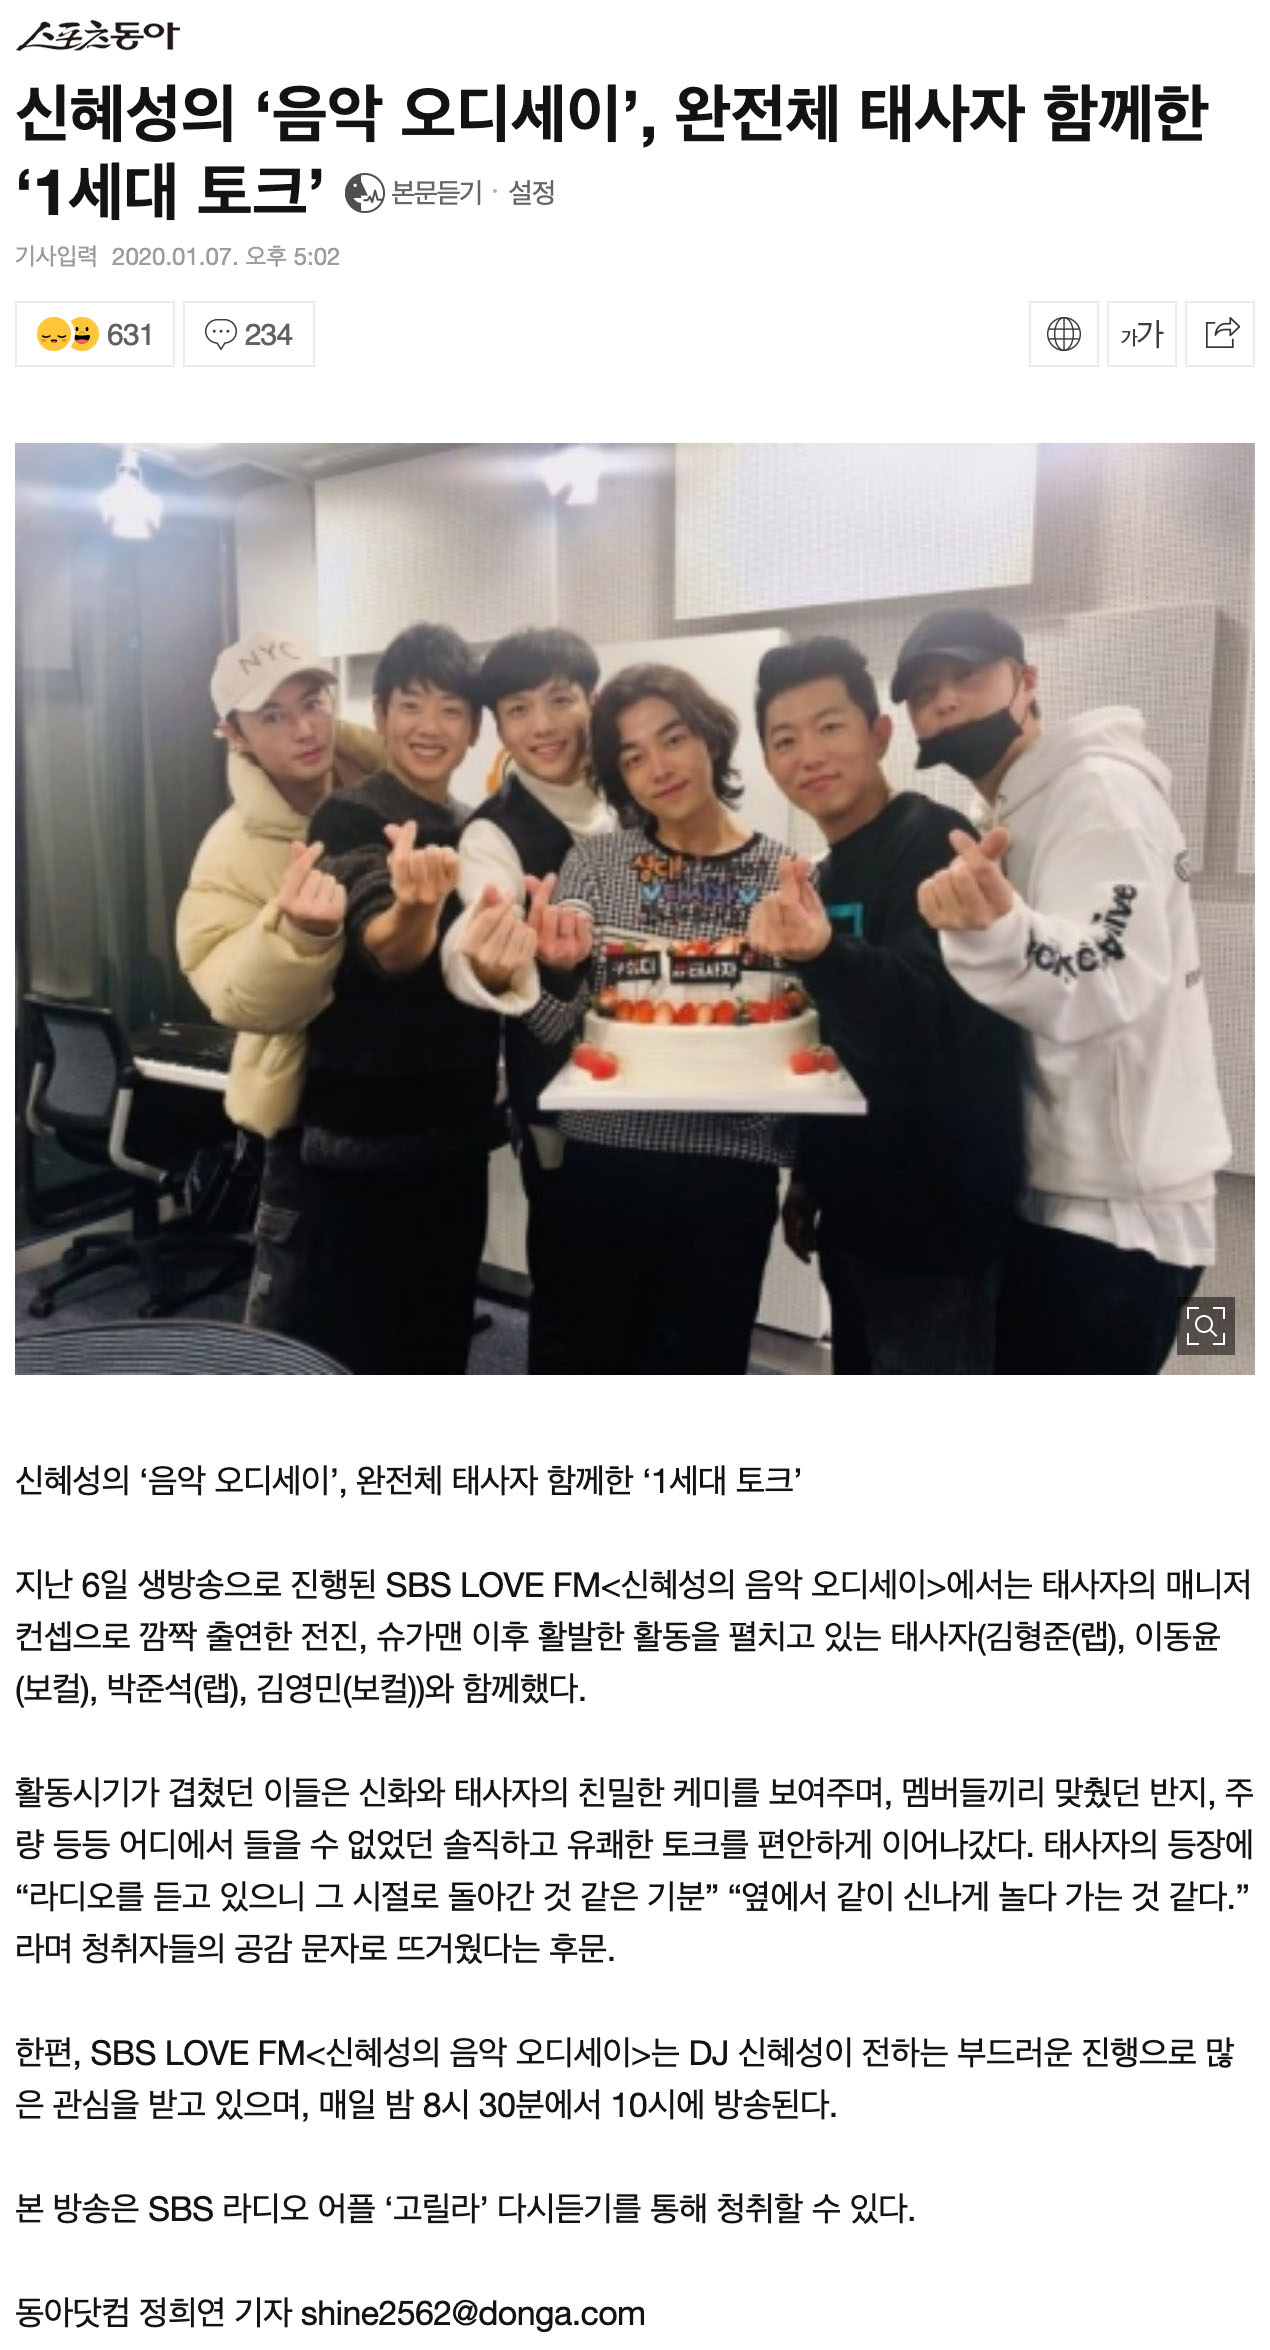 screencapture-n-news-naver-entertain-article-382-0000789306-2020-01-31-12_22_33